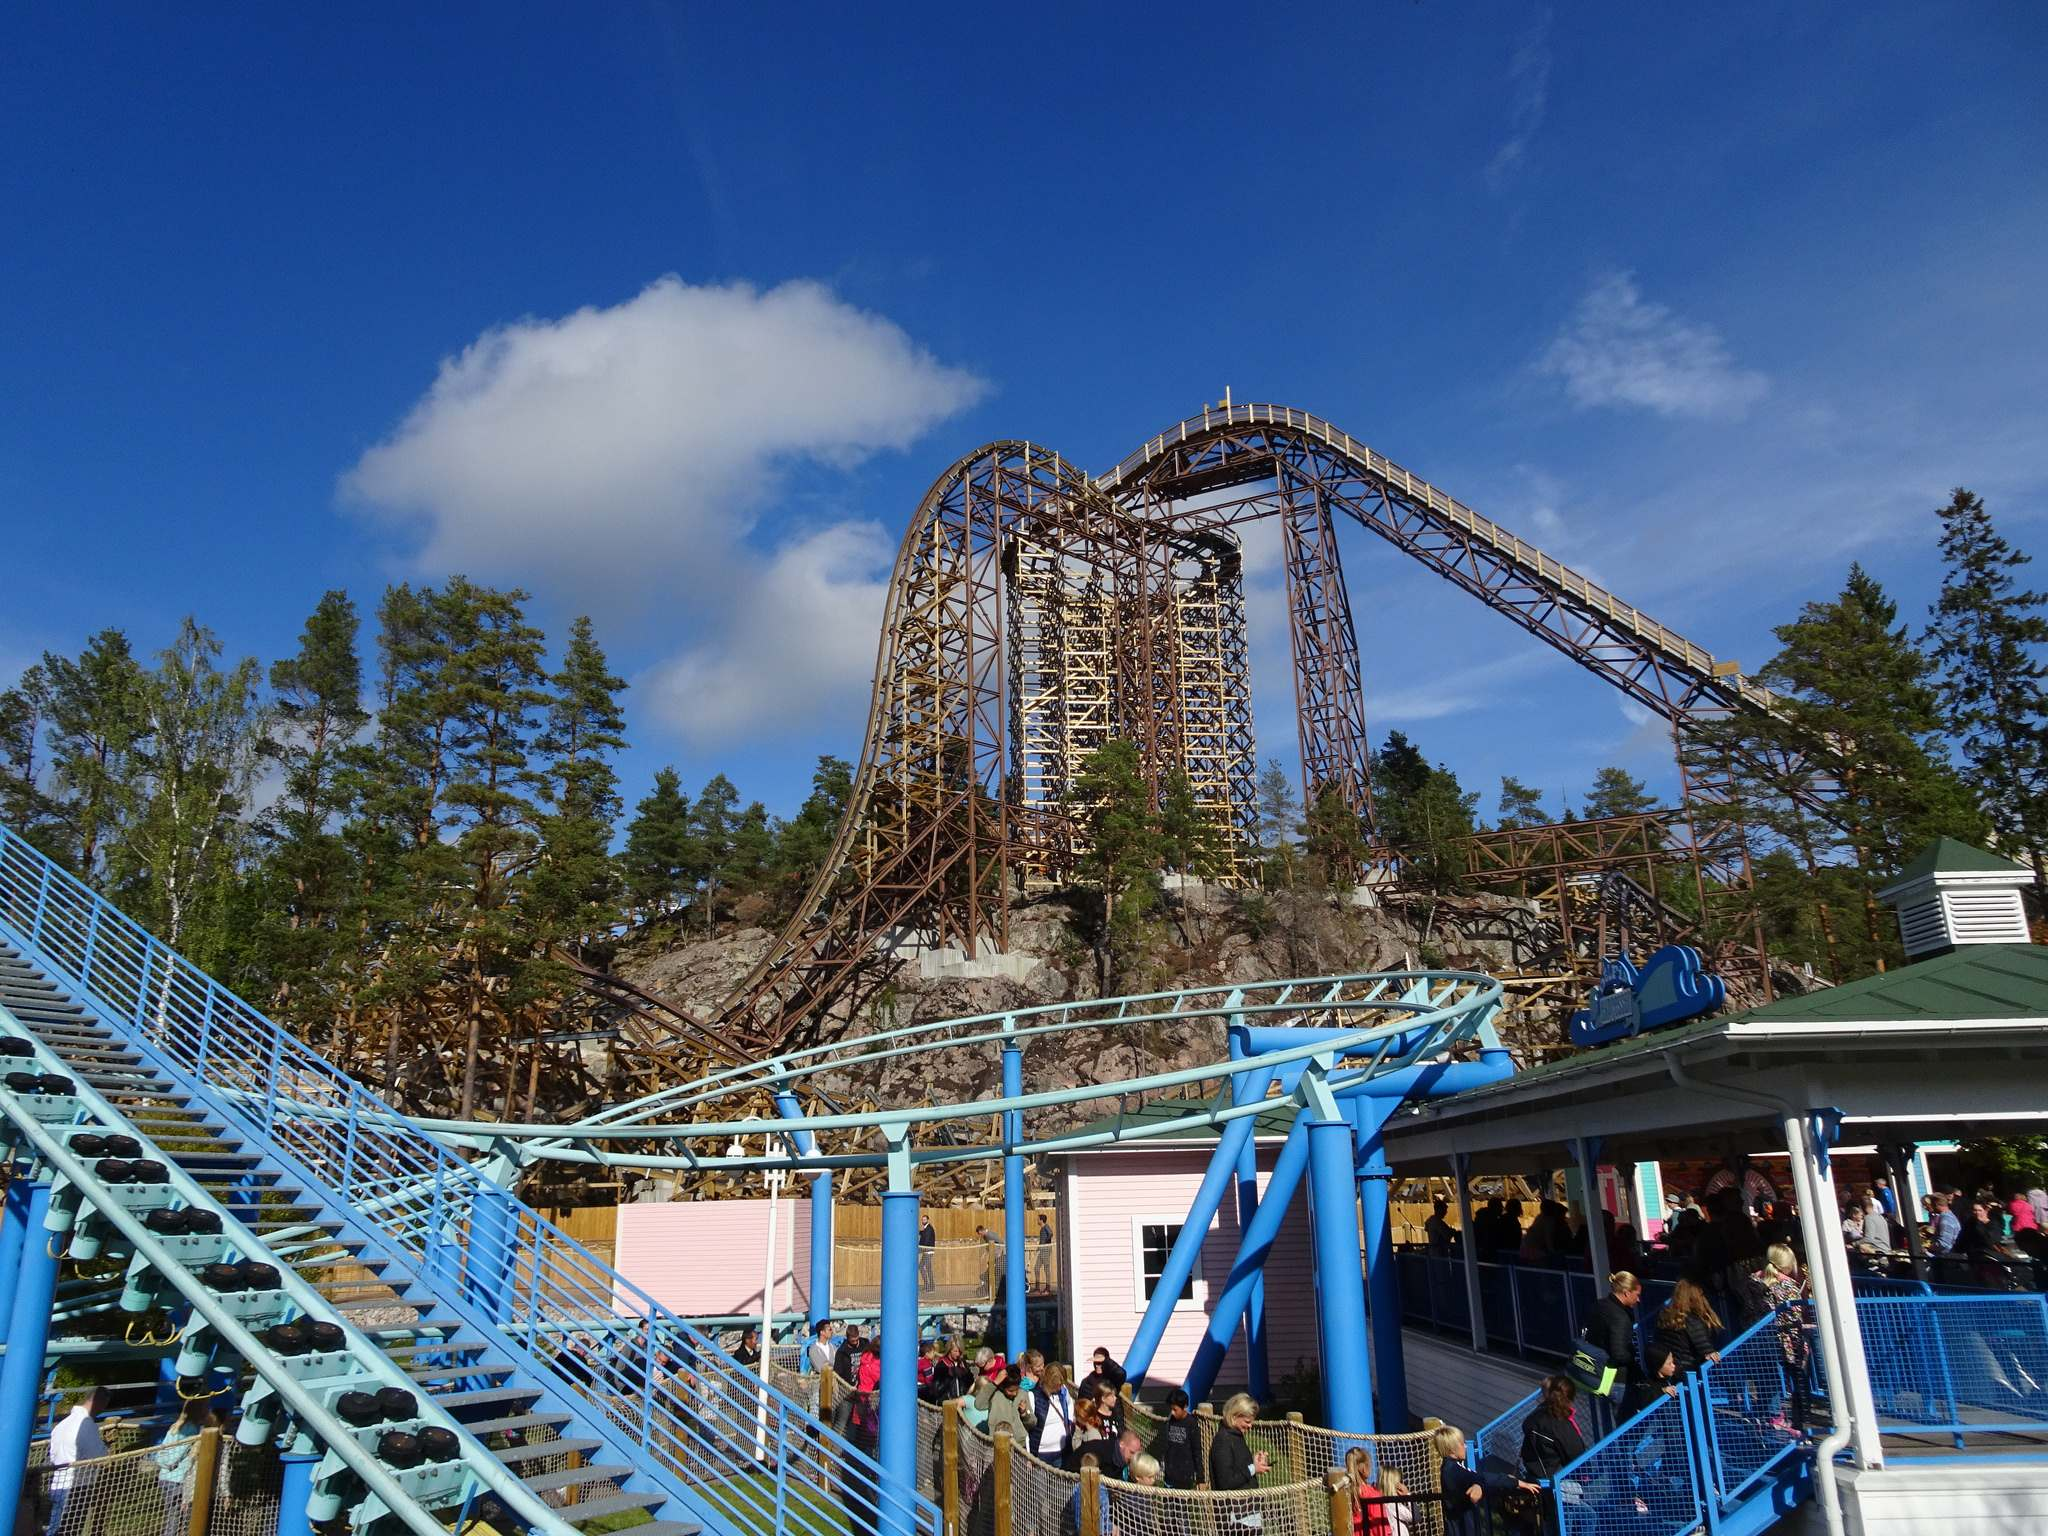 wildfire2 Wildfire   Fastest Wooden Coaster in Europe